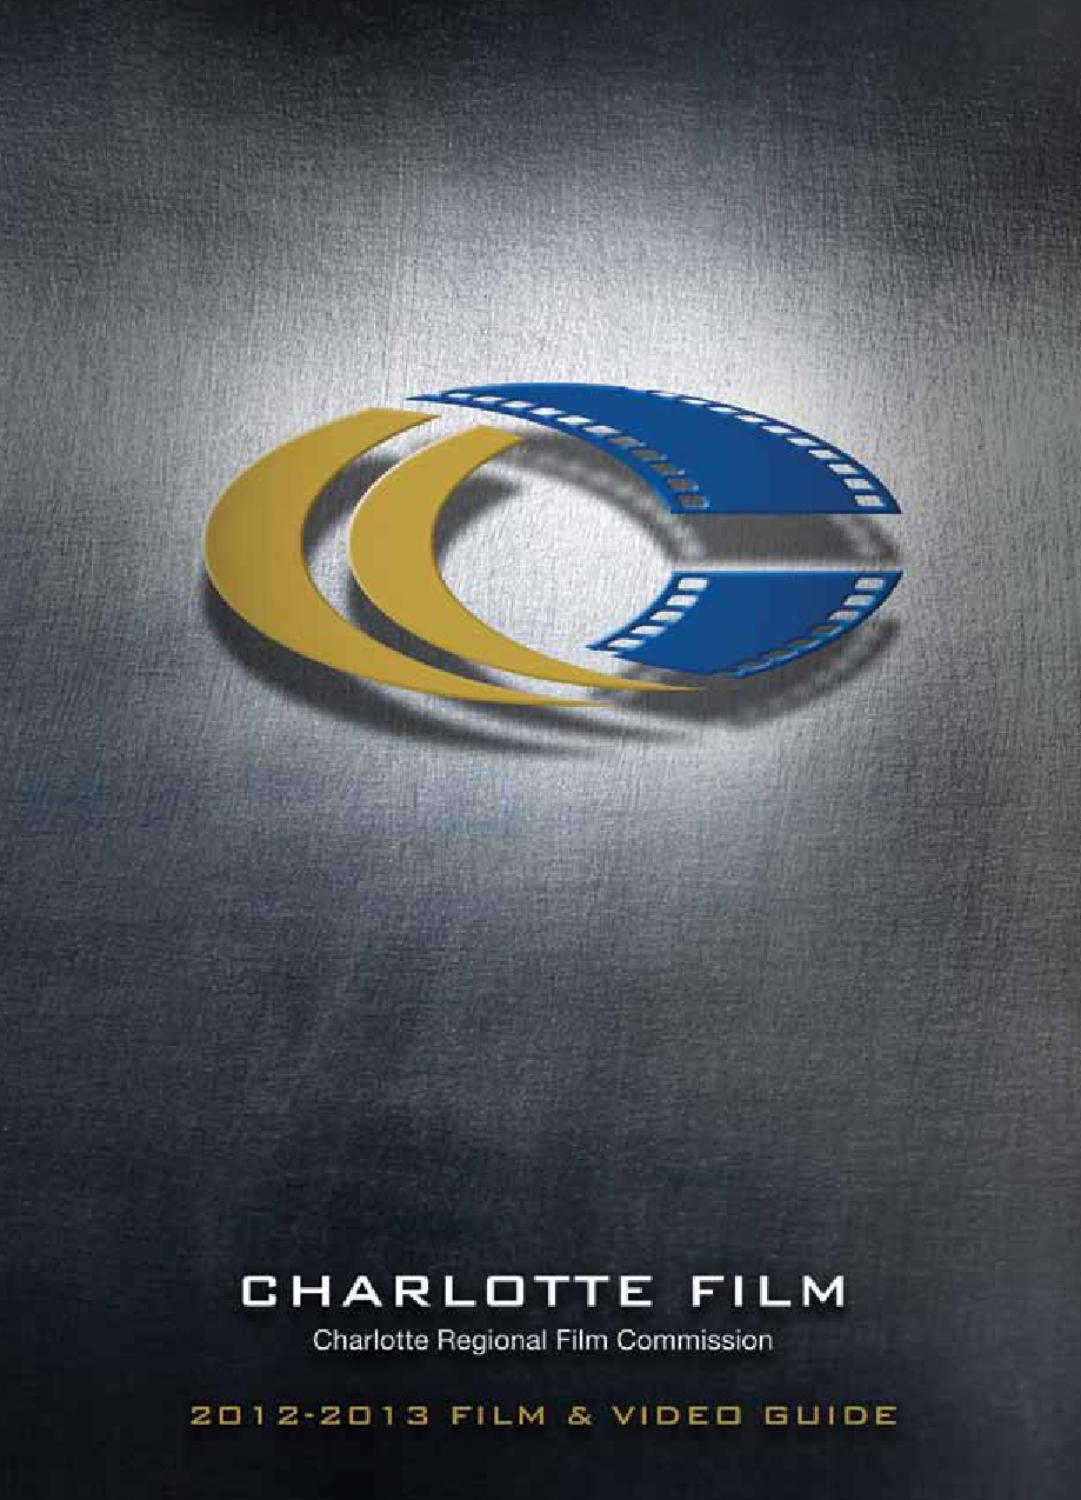 Charlotte Regional Film Video Guide 2012 2013 By Oz Publishing Mig Welder Help Electrical Enginering Pelican Parts Technical Bbs Inc Issuu